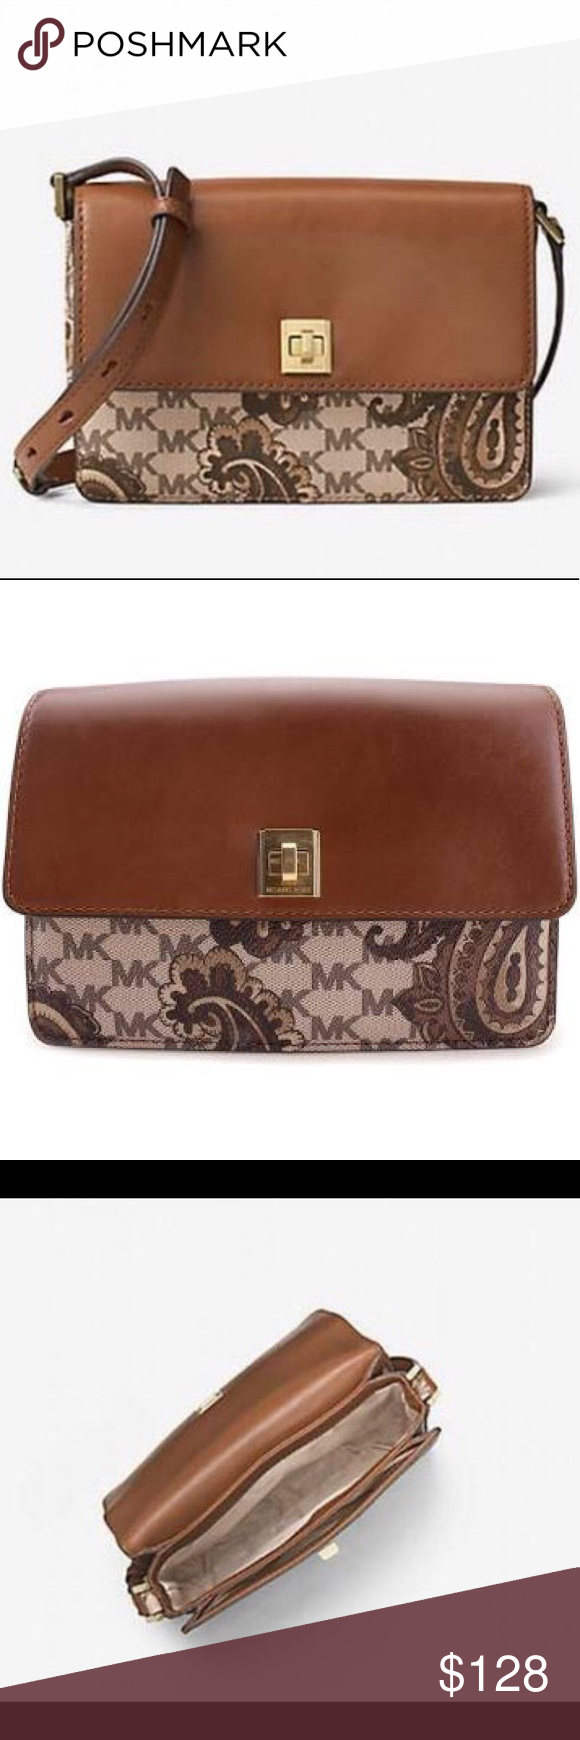 a6399b978ad8 MK Natalie M Heritage Paisley Crossbody collection Michael Kors Studio  Collection Natalie Medium Heritage Paisley Crossbody,new with tag and dust  bag.